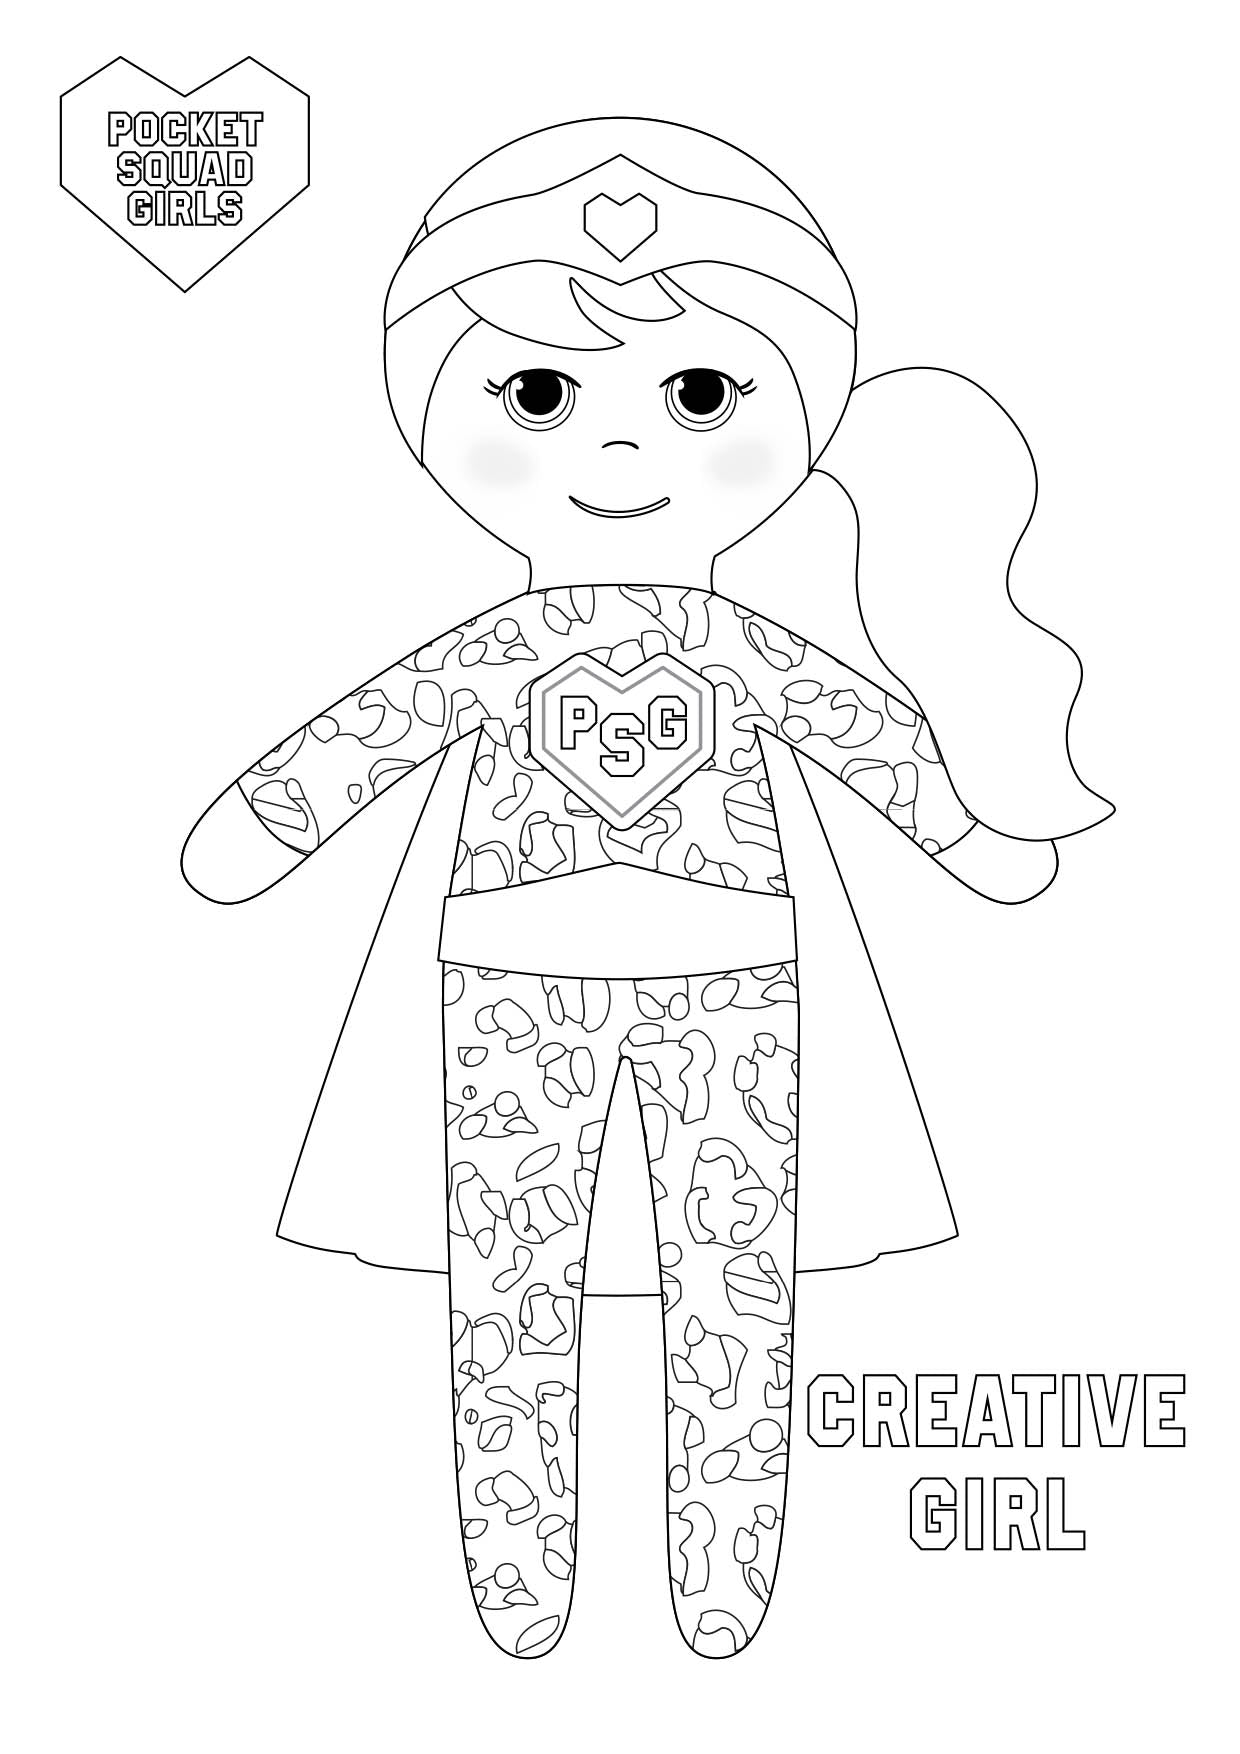 Pocket Squad Girls Creative Girl colouring-in PDF